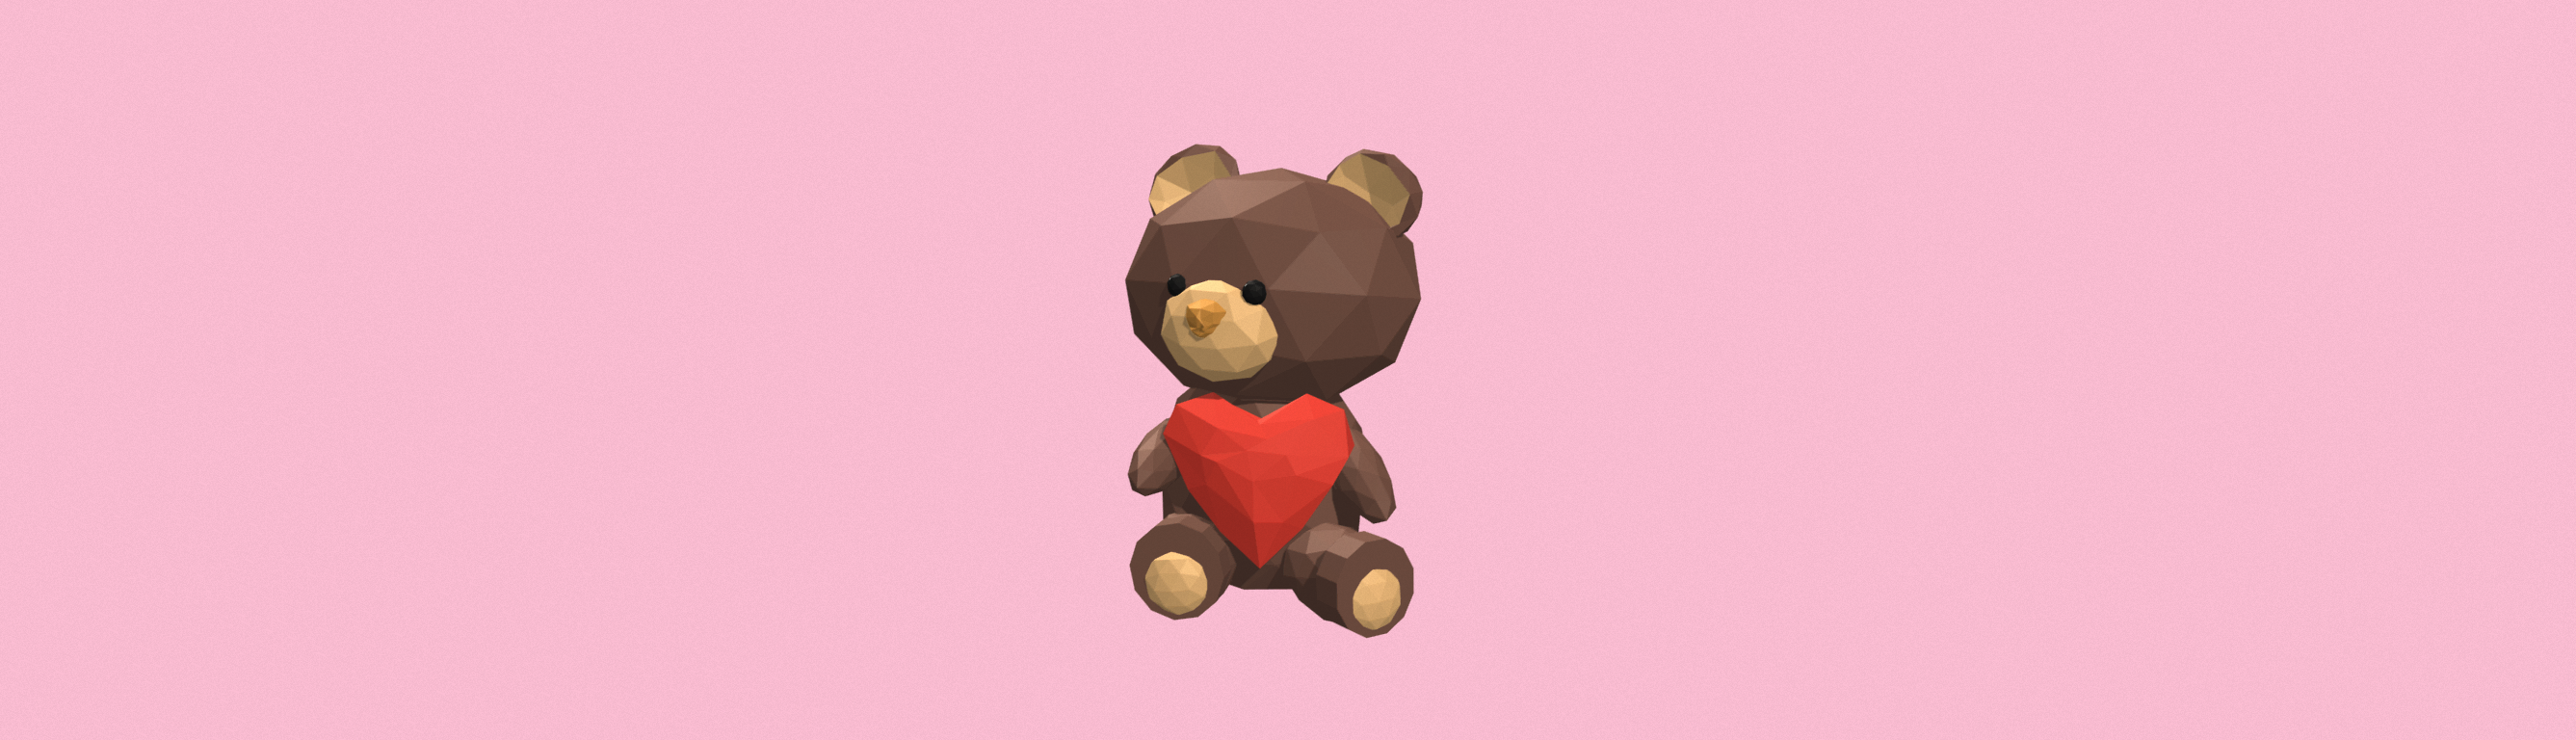 Valentine's Bear, Joyce Lee